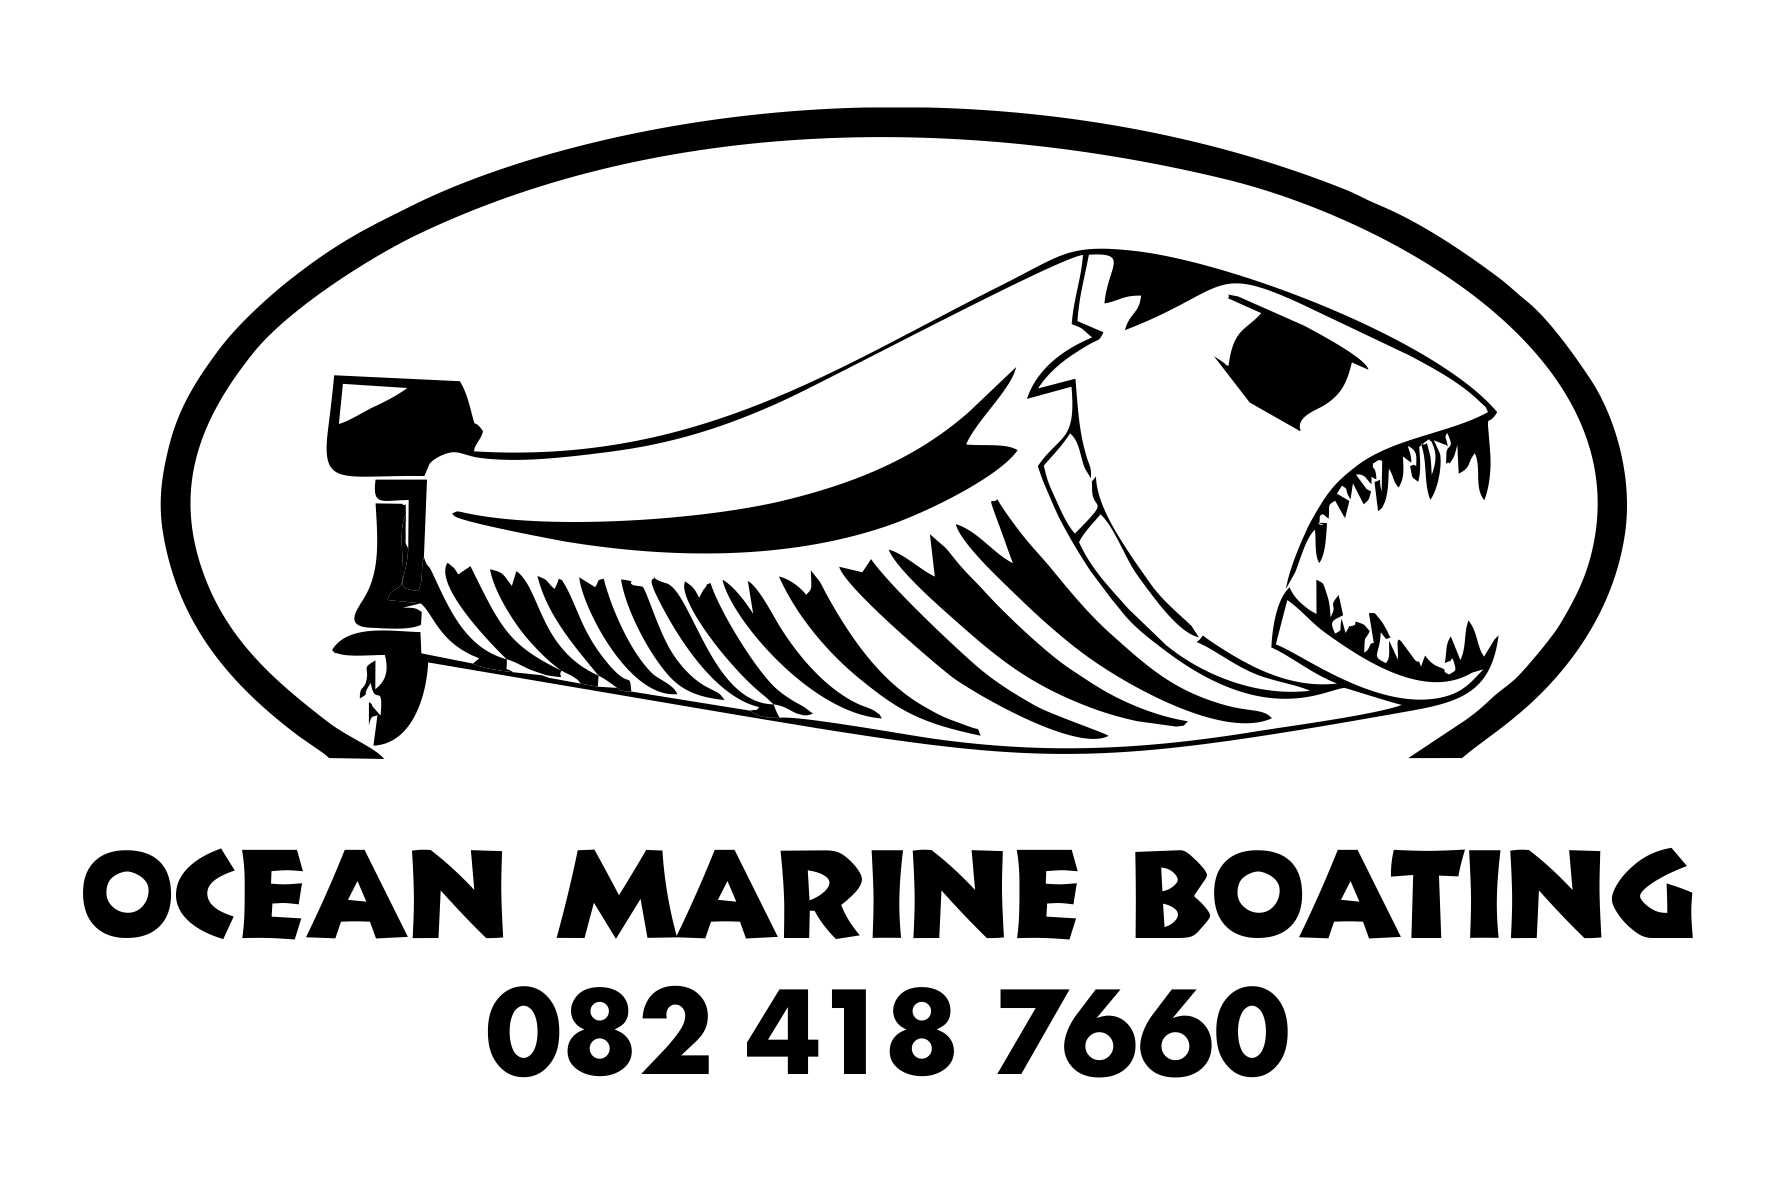 Ocean Marine Boating